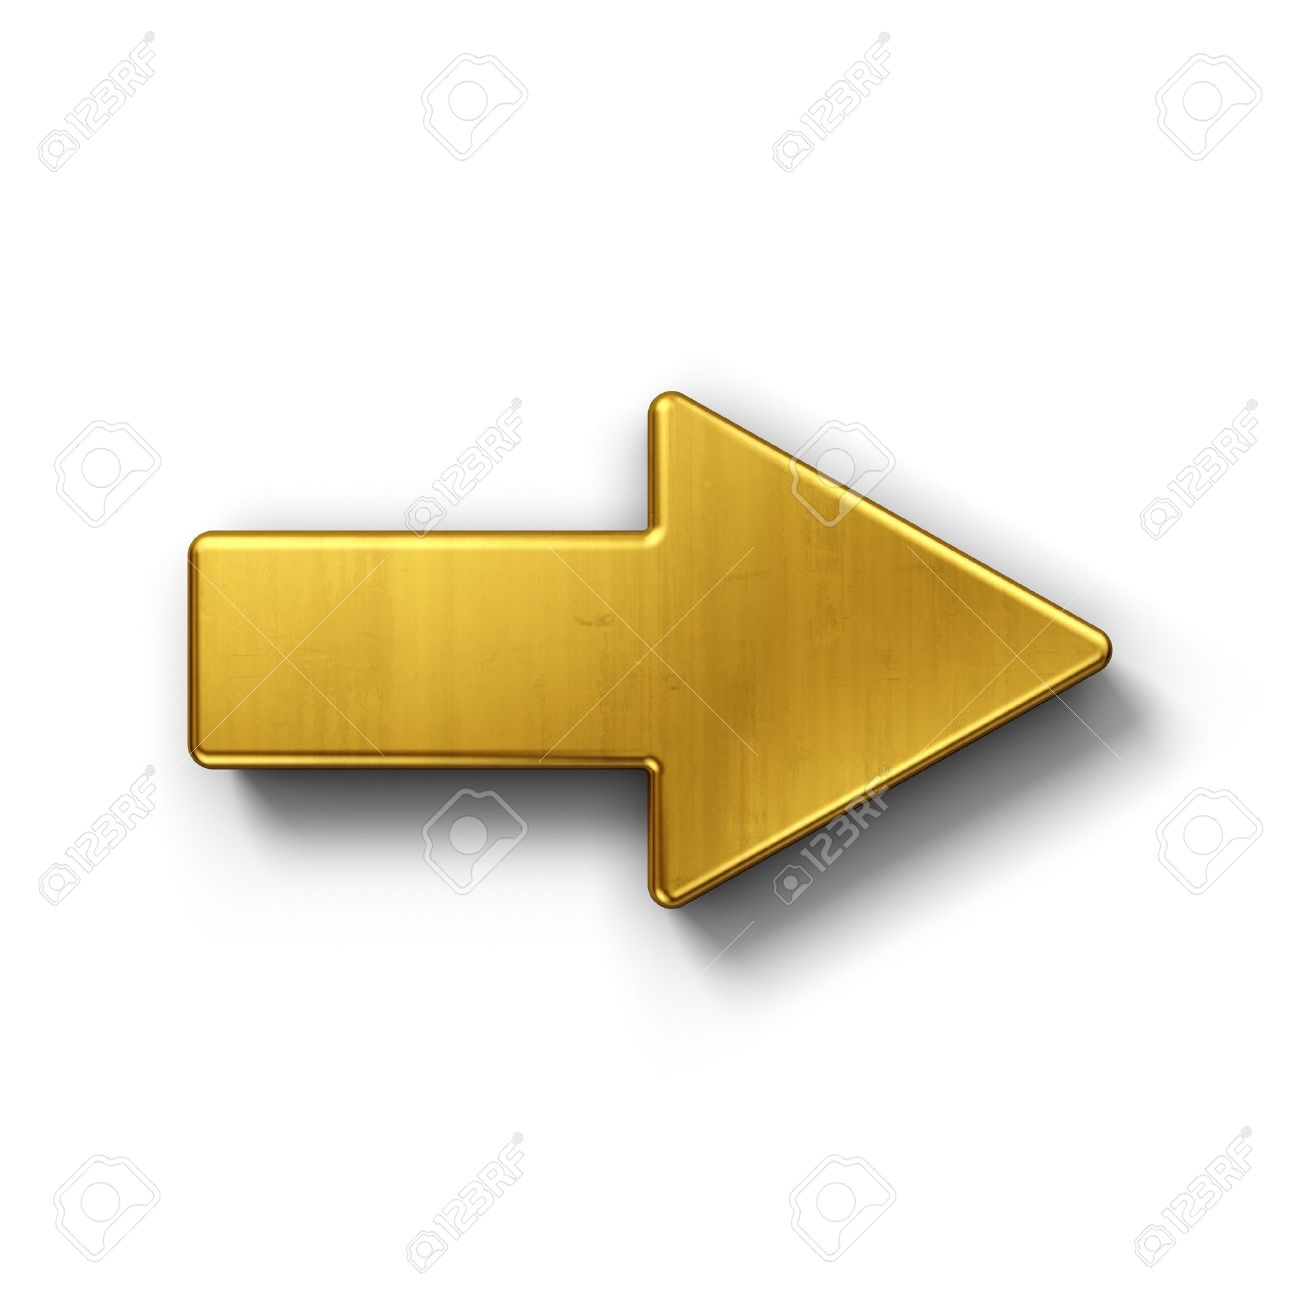 3d rendering of an arrow symbol in gold on a white isolated background. Stock Photo - 8293962